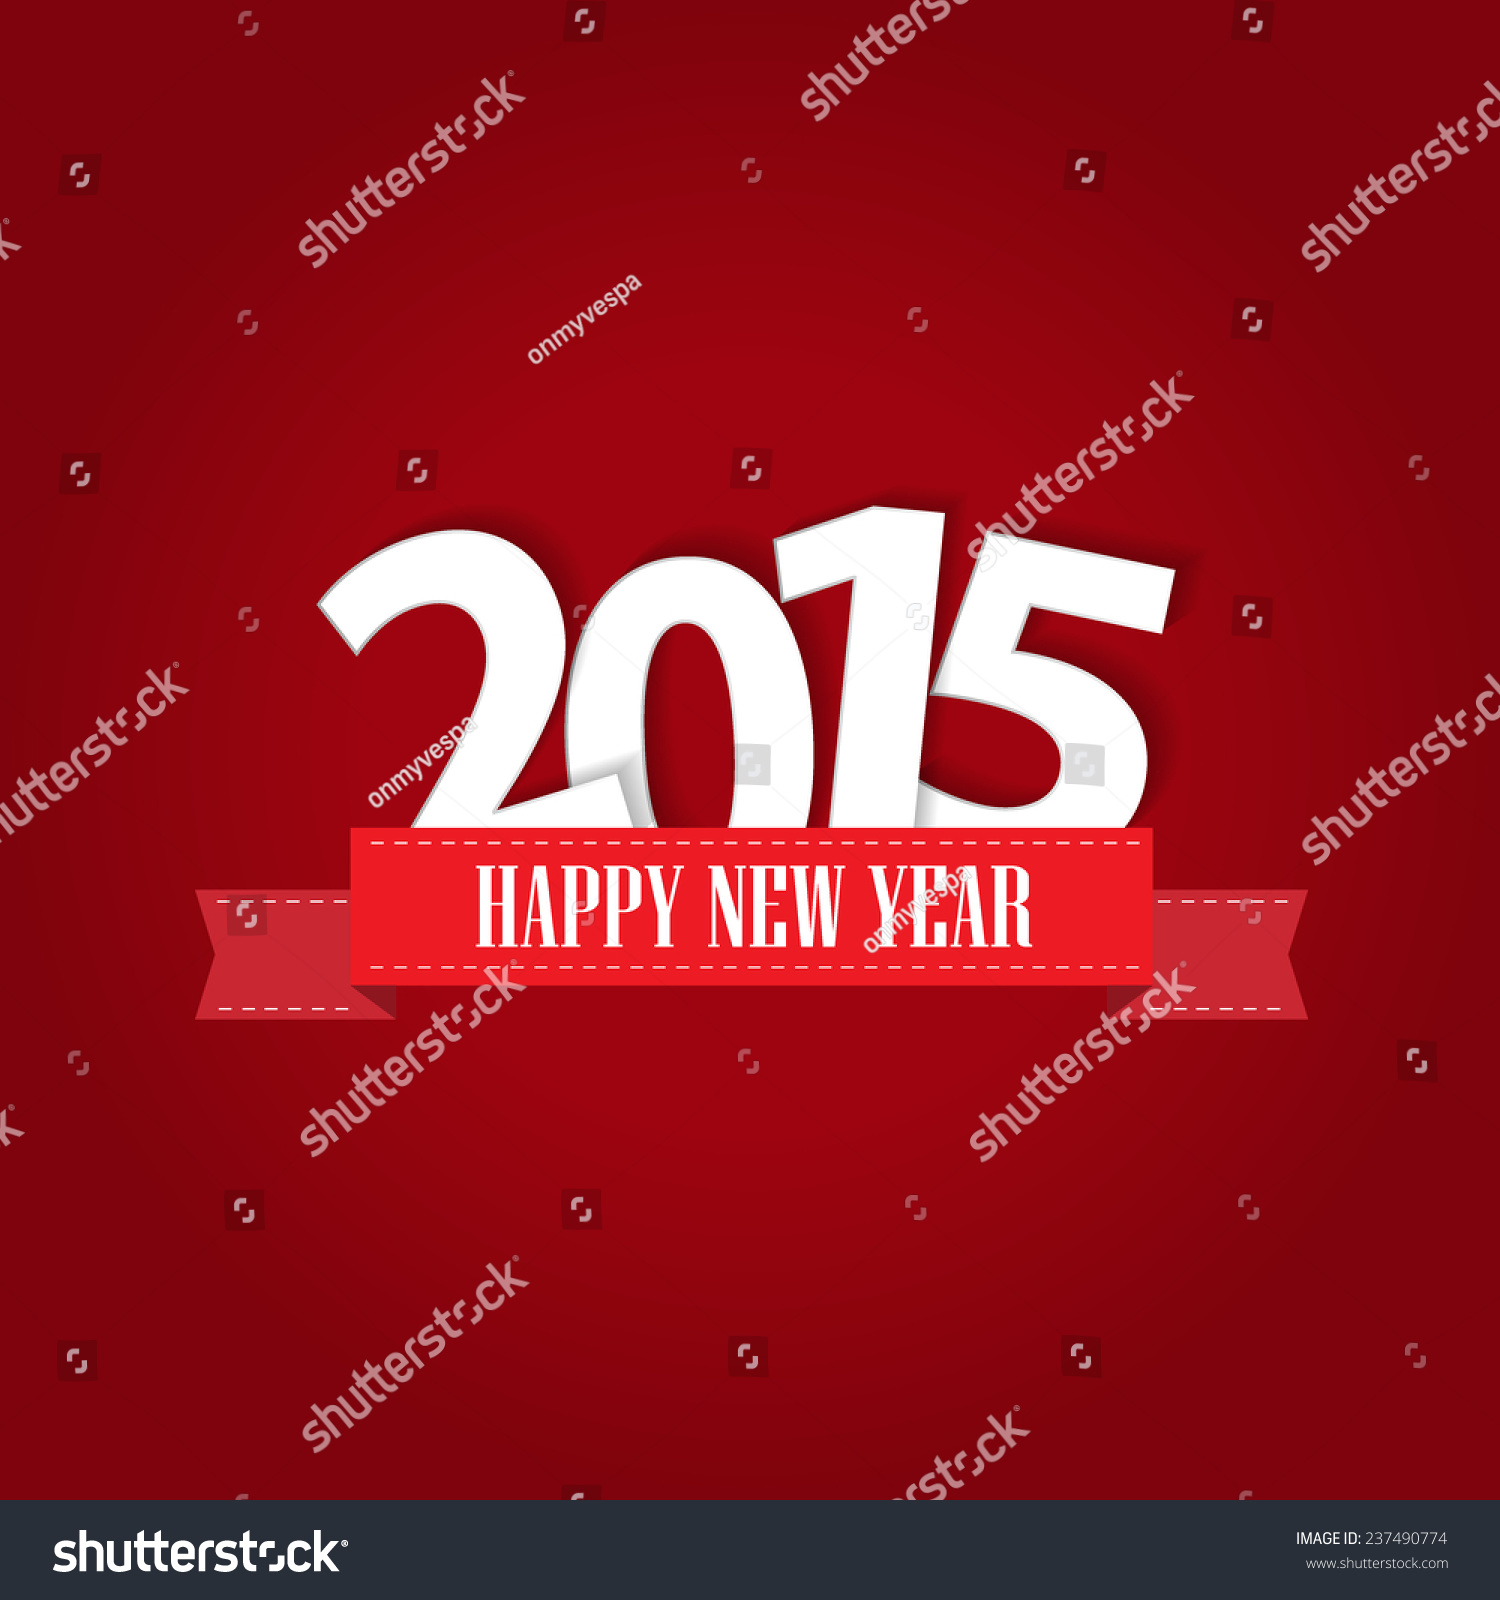 Happy New Year 2015 Greeting Card Stock Vector 237490774 Shutterstock